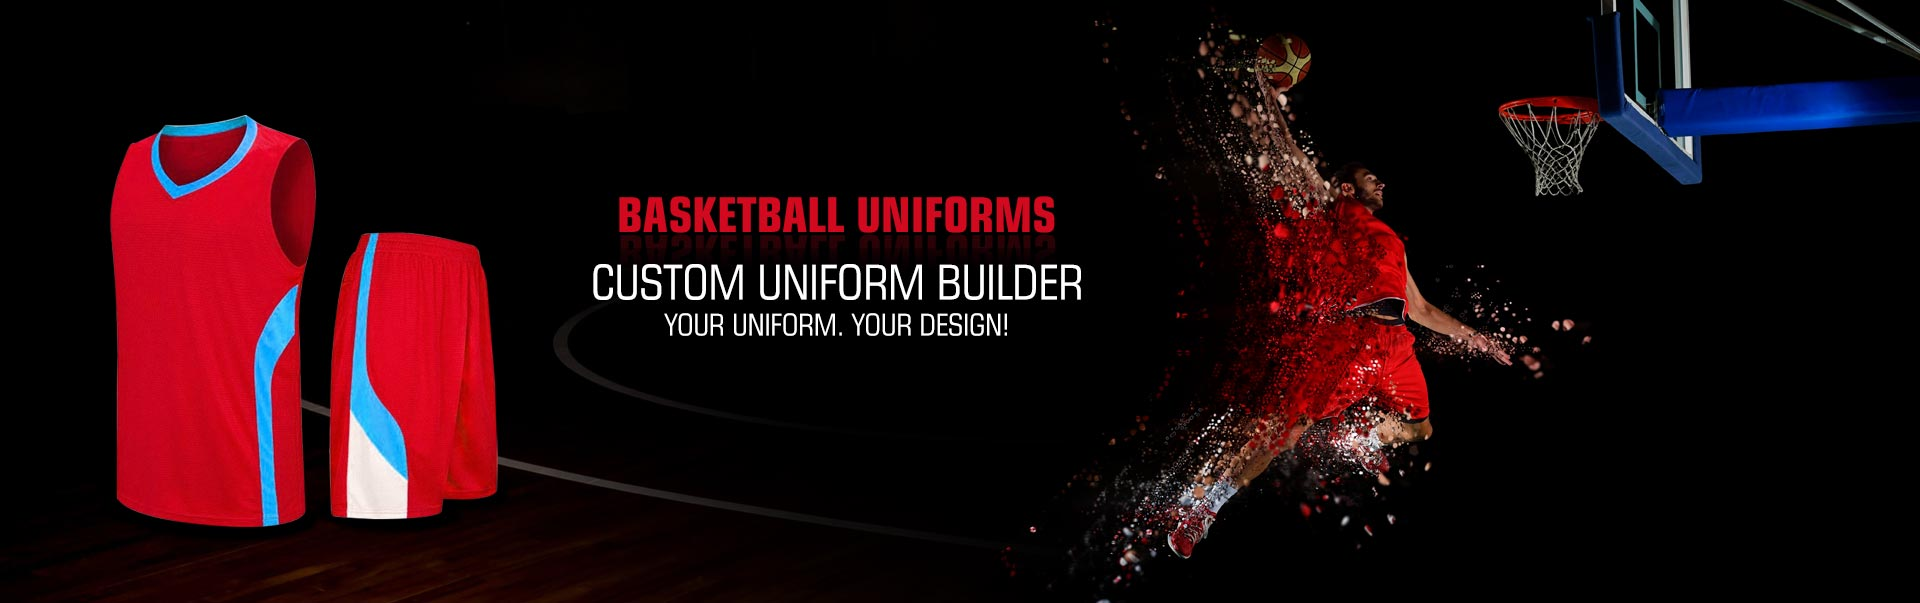 Basketball Uniforms Wholesaler, Suppliers in Thornton